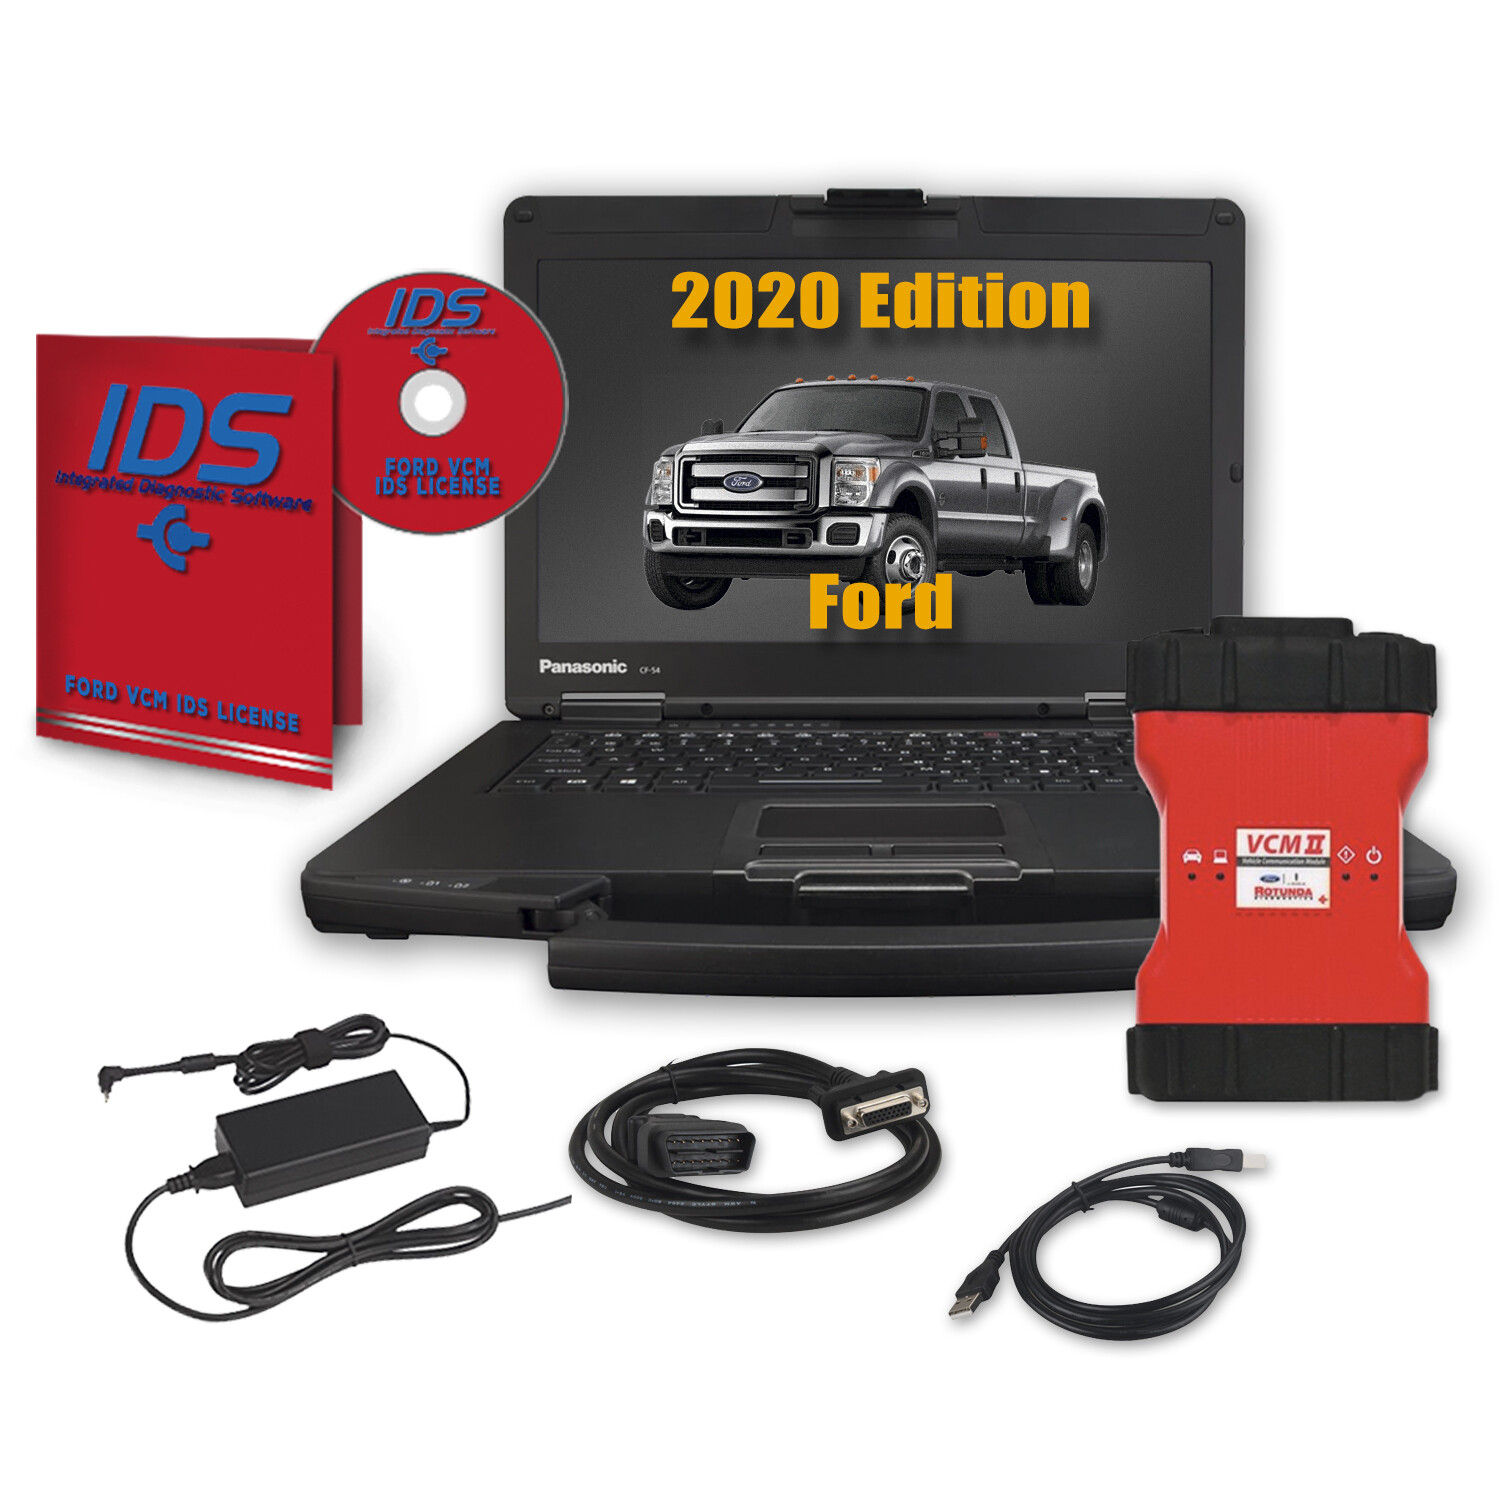 Ford IDS Software, Full Annual Subscription with VCM 2 (VCM II) Ford Tool with Toughbook Dealer Package